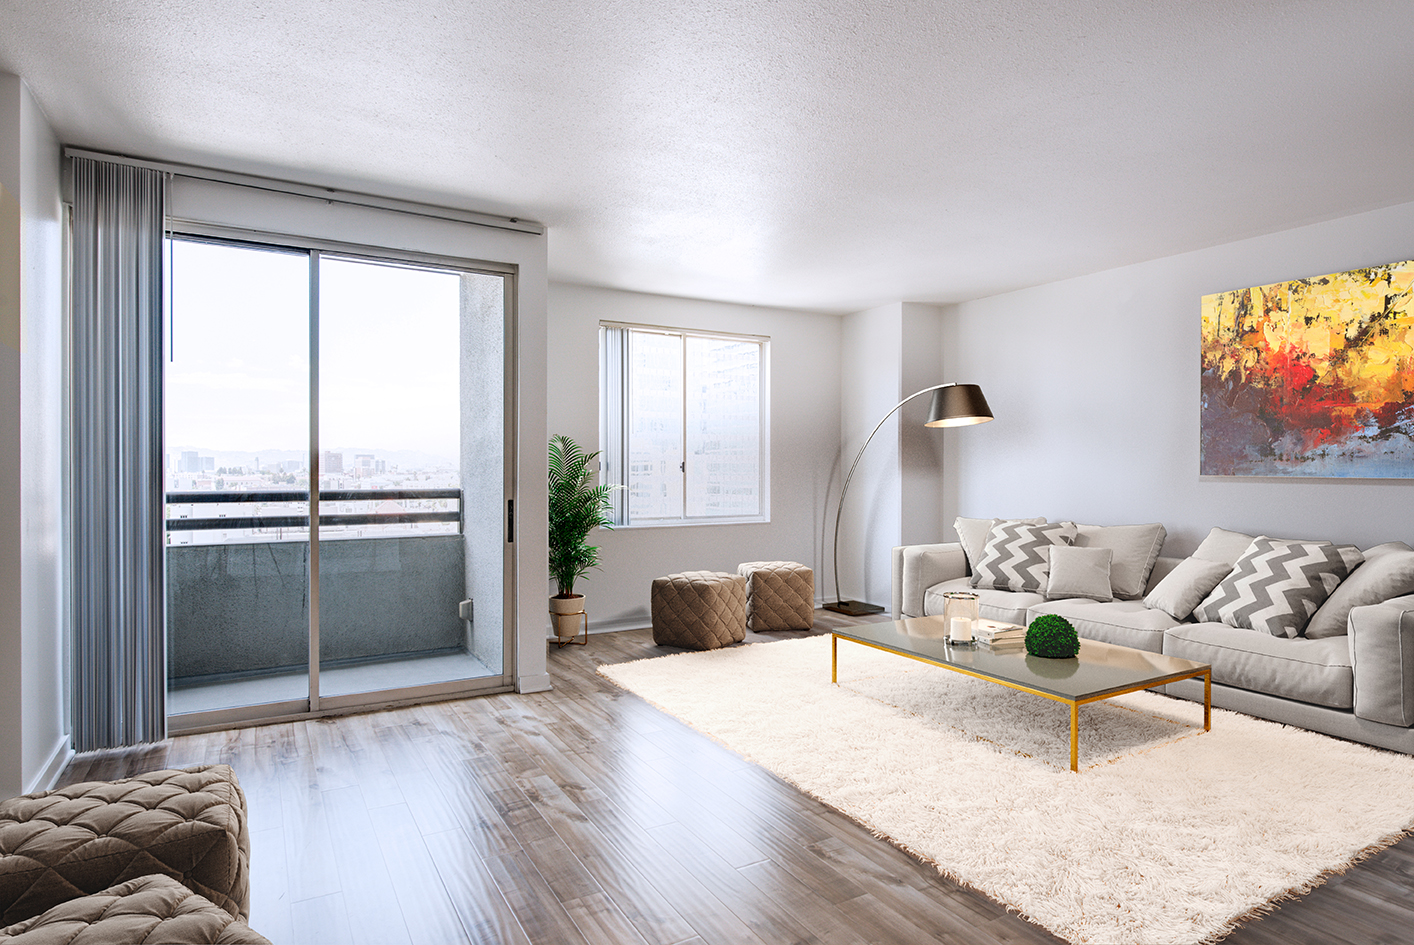 Living room in an apartment unit